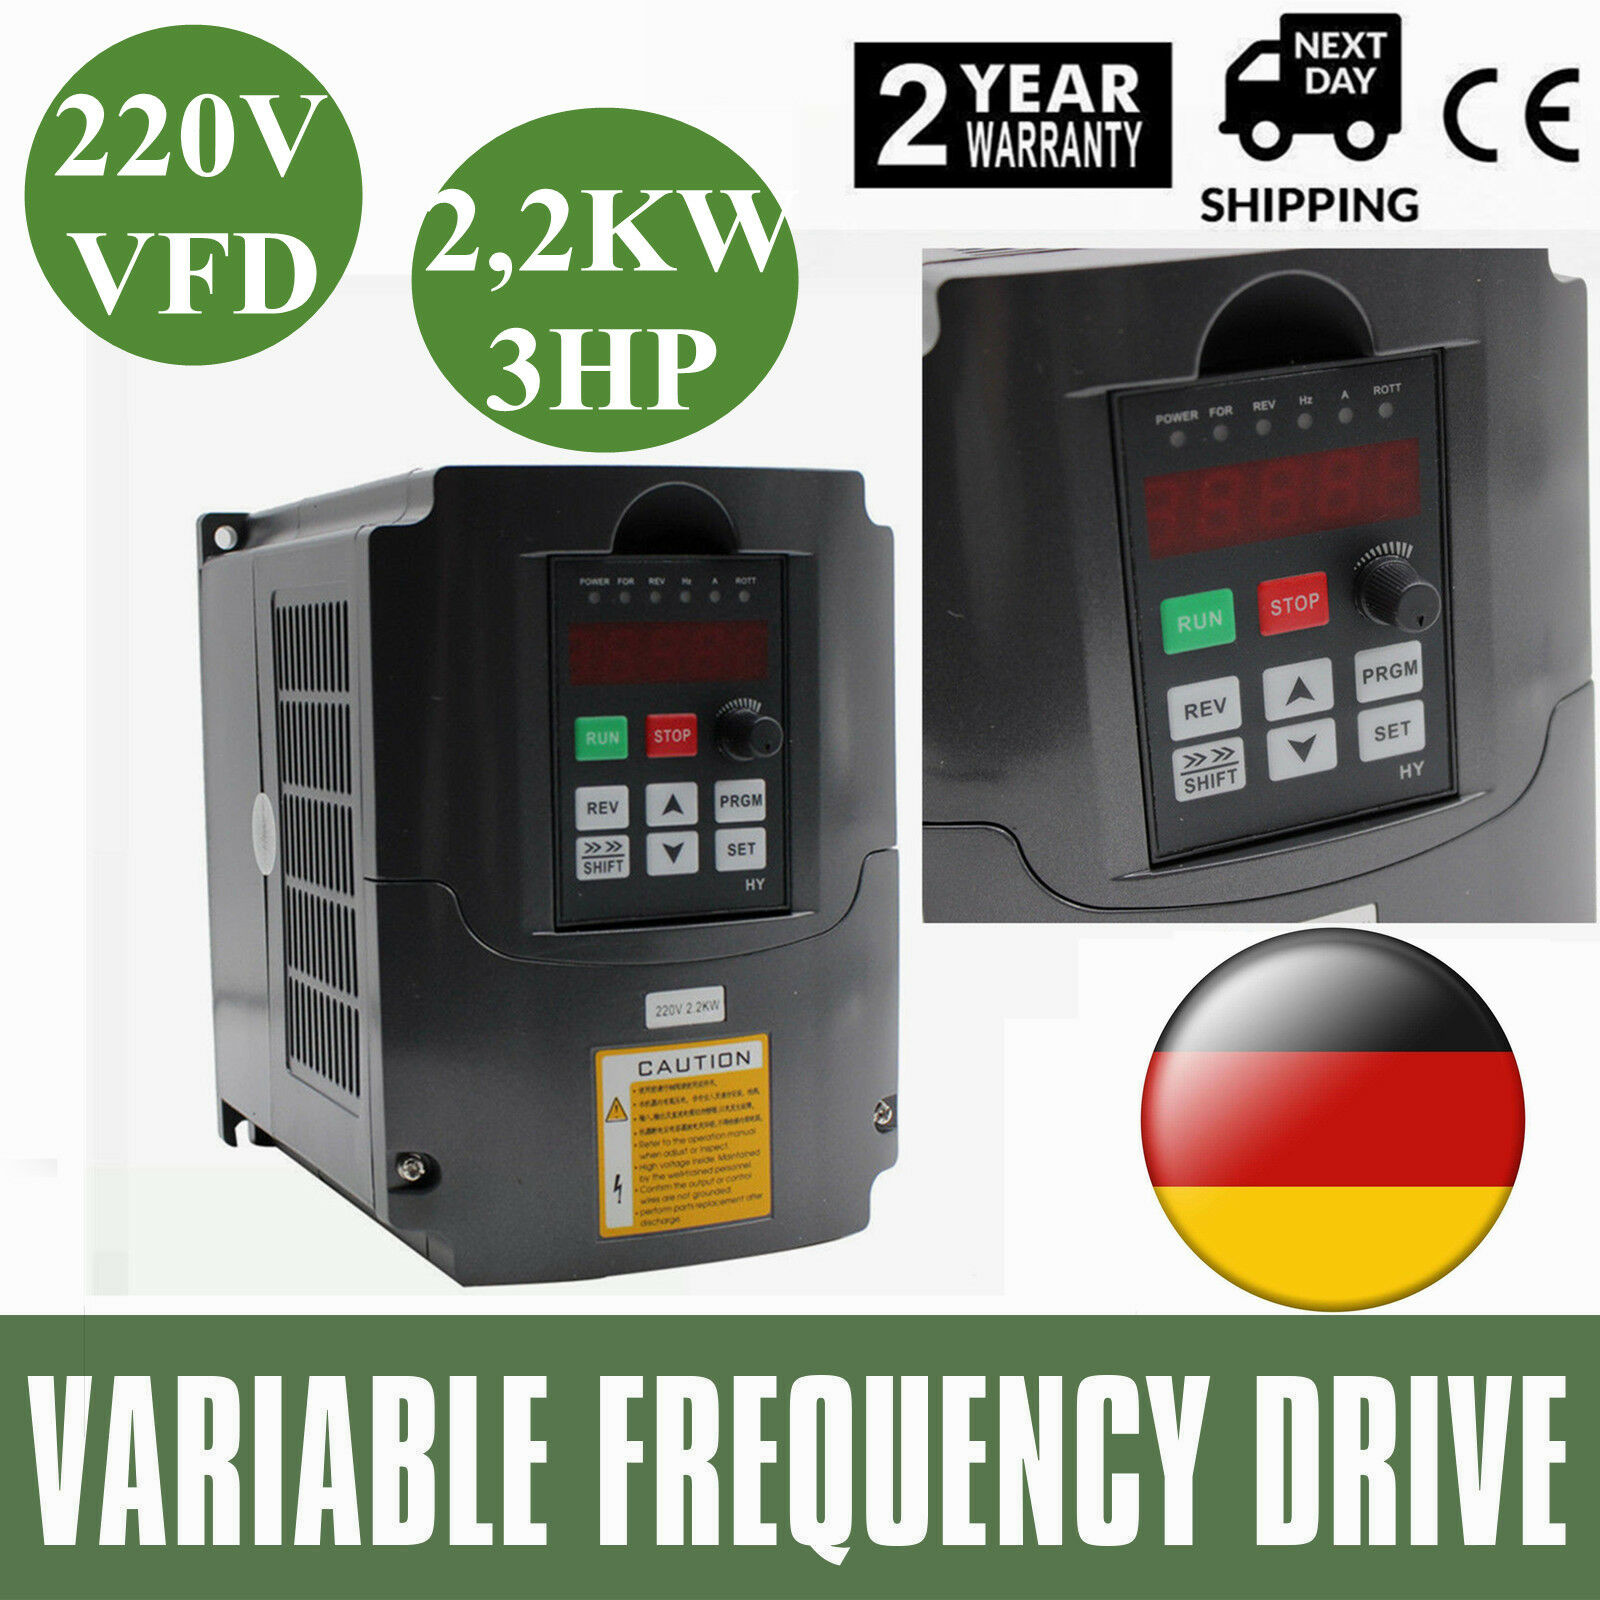 HY 2,2KW 220V 3HP 10A VARIABLE FREQUENCY DRIVE INgreenER VFD Frequenzumrichter DE